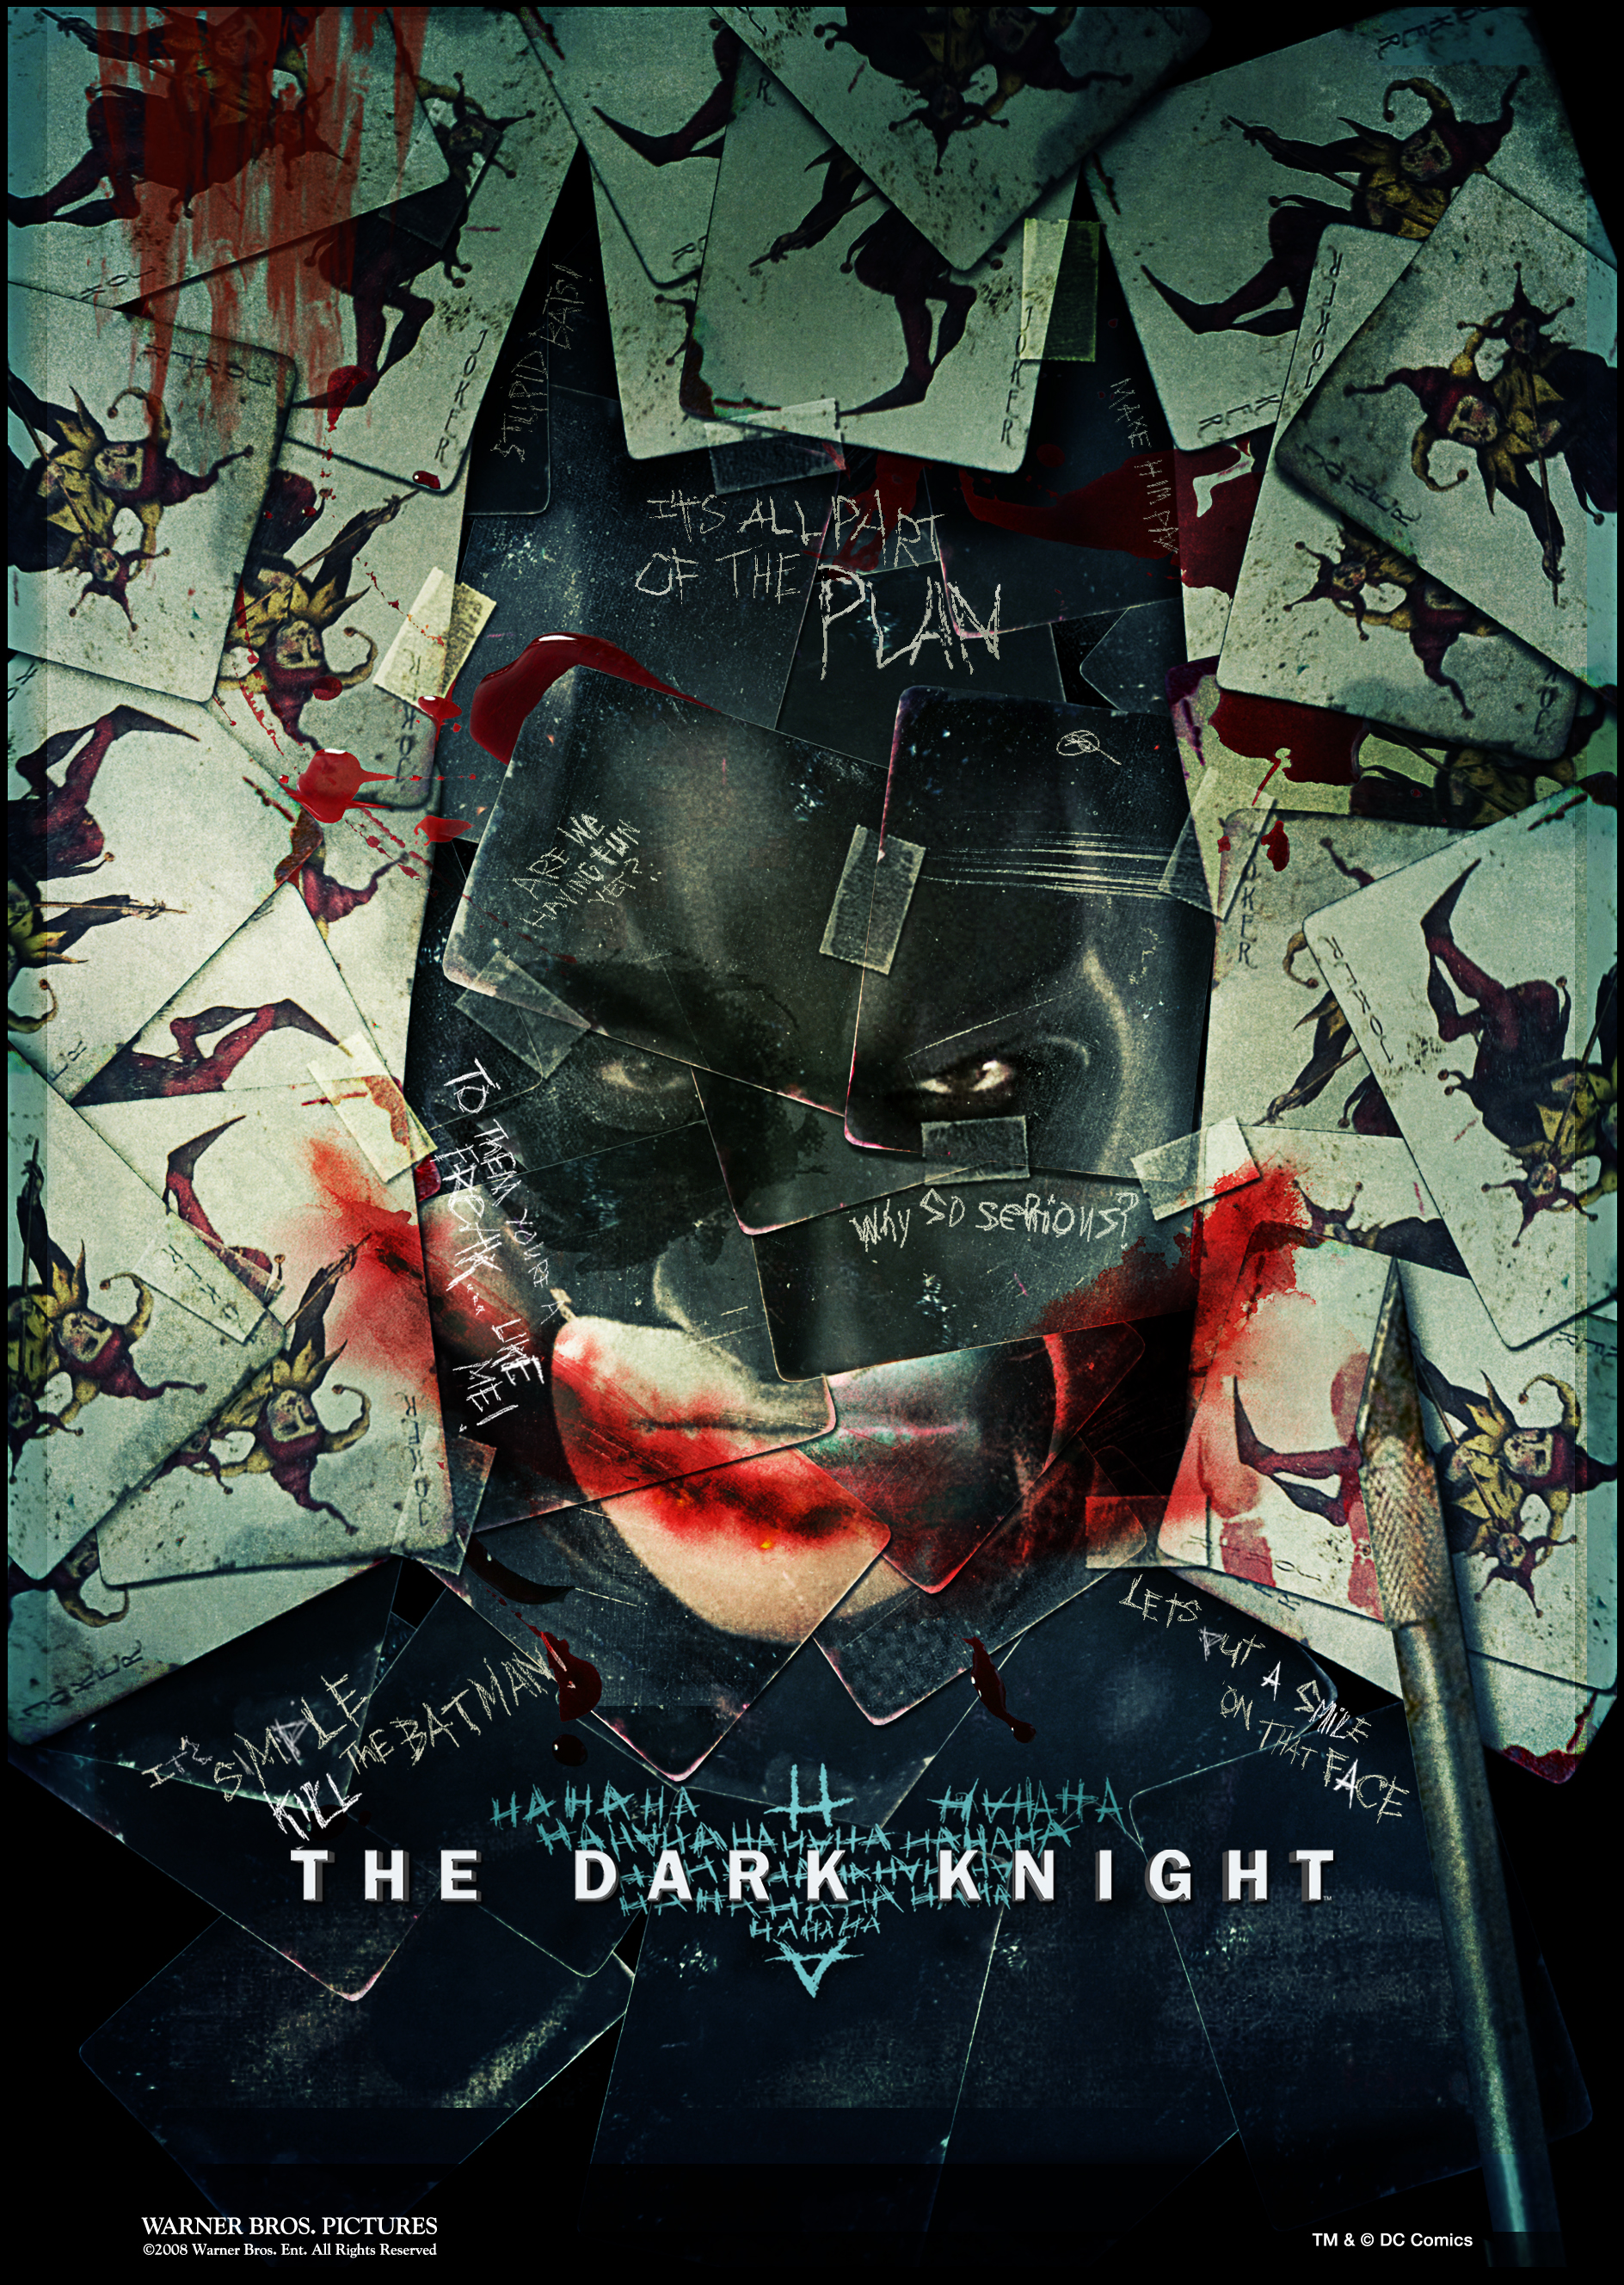 The Dark Knight - Posters